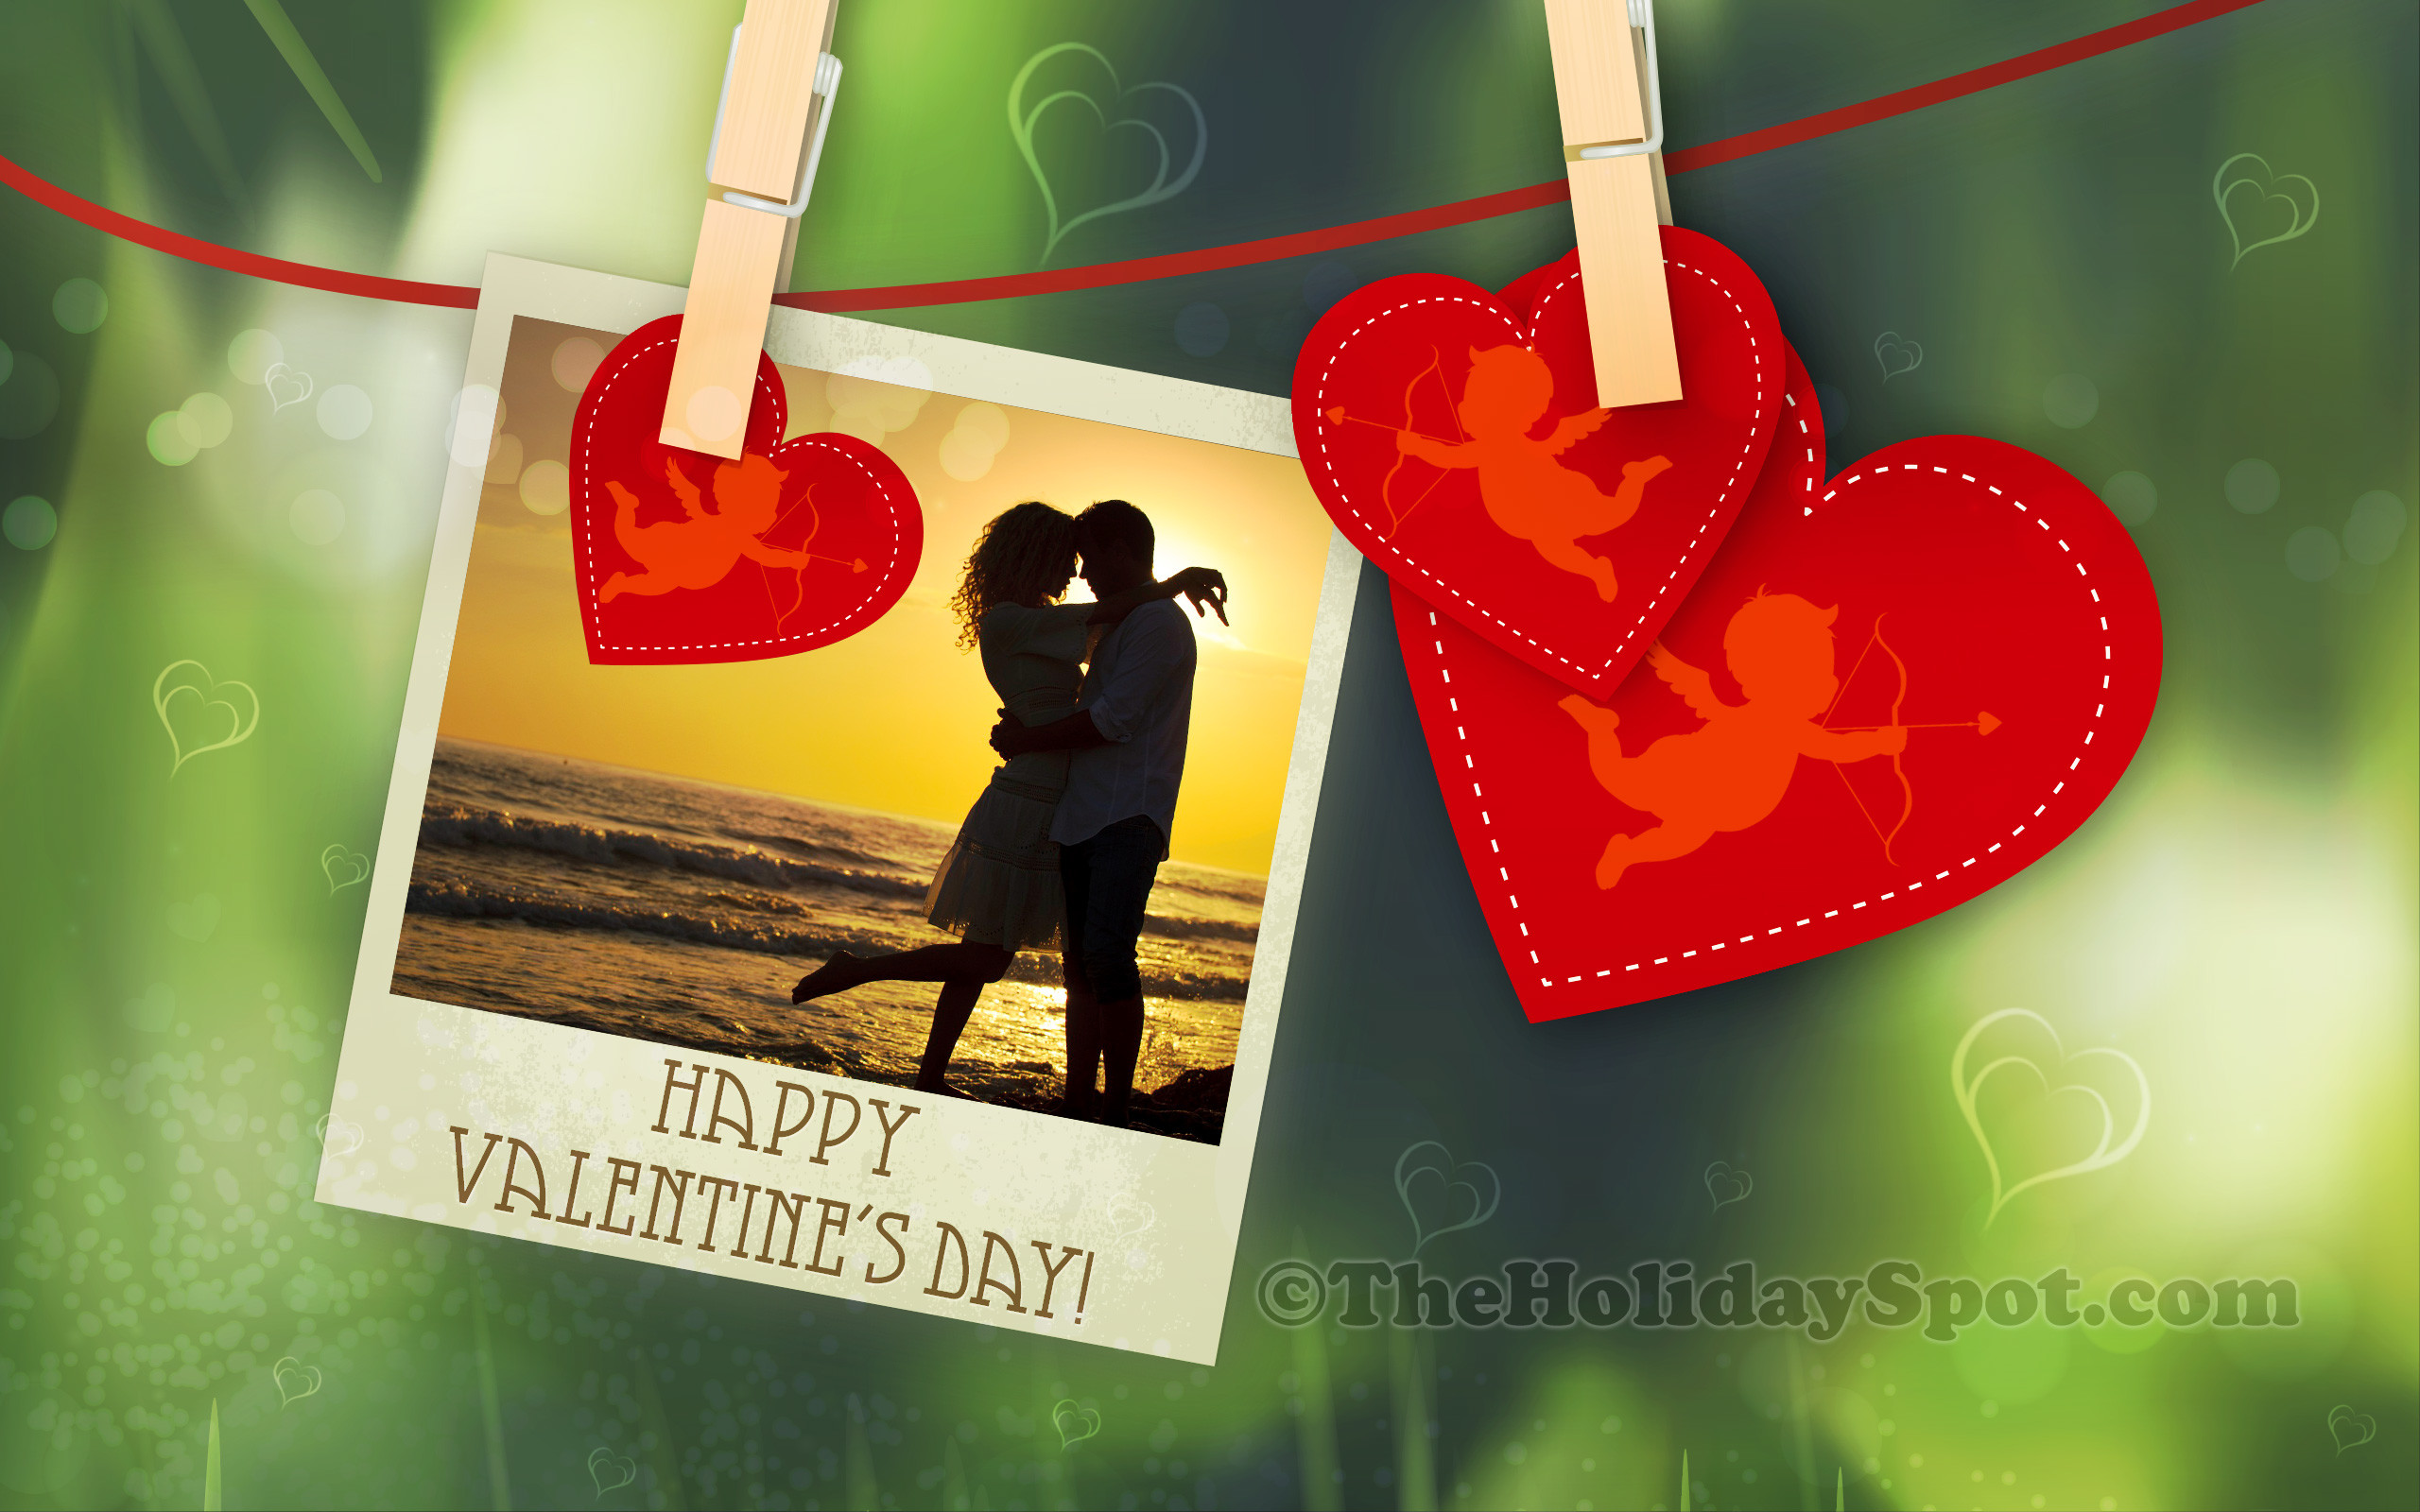 2560x1600 83 Free Valentine's Day HD Wallpapers for Download - Background Images, Desktop  Wallpapers